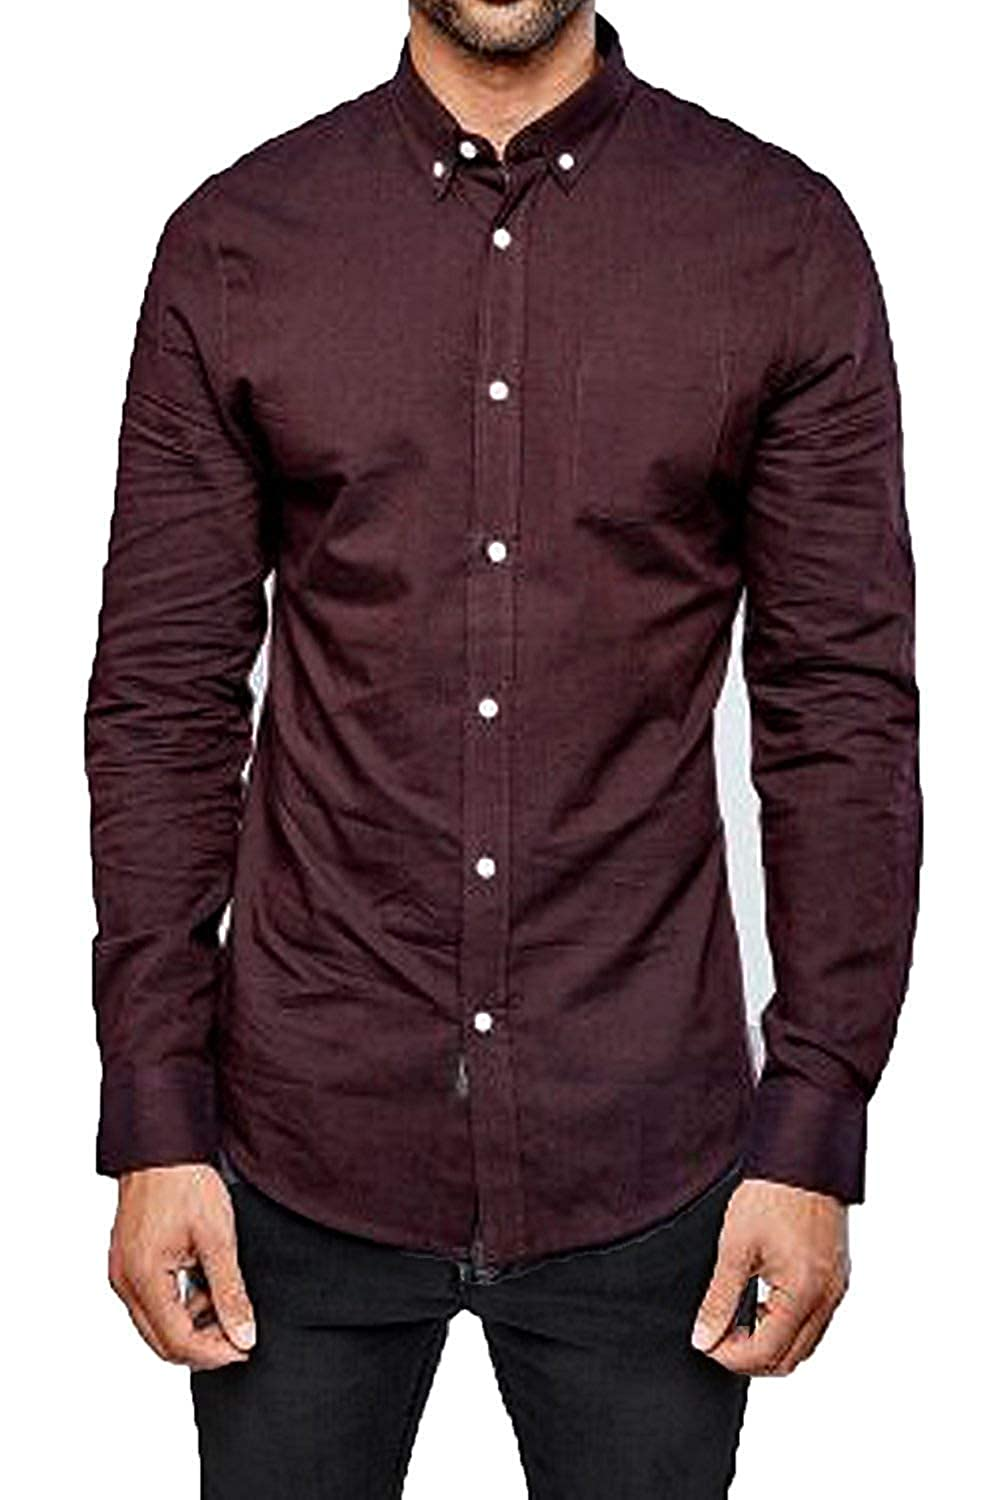 TALLA M. Threadbare - Camisa Formal - Camisa - para Hombre